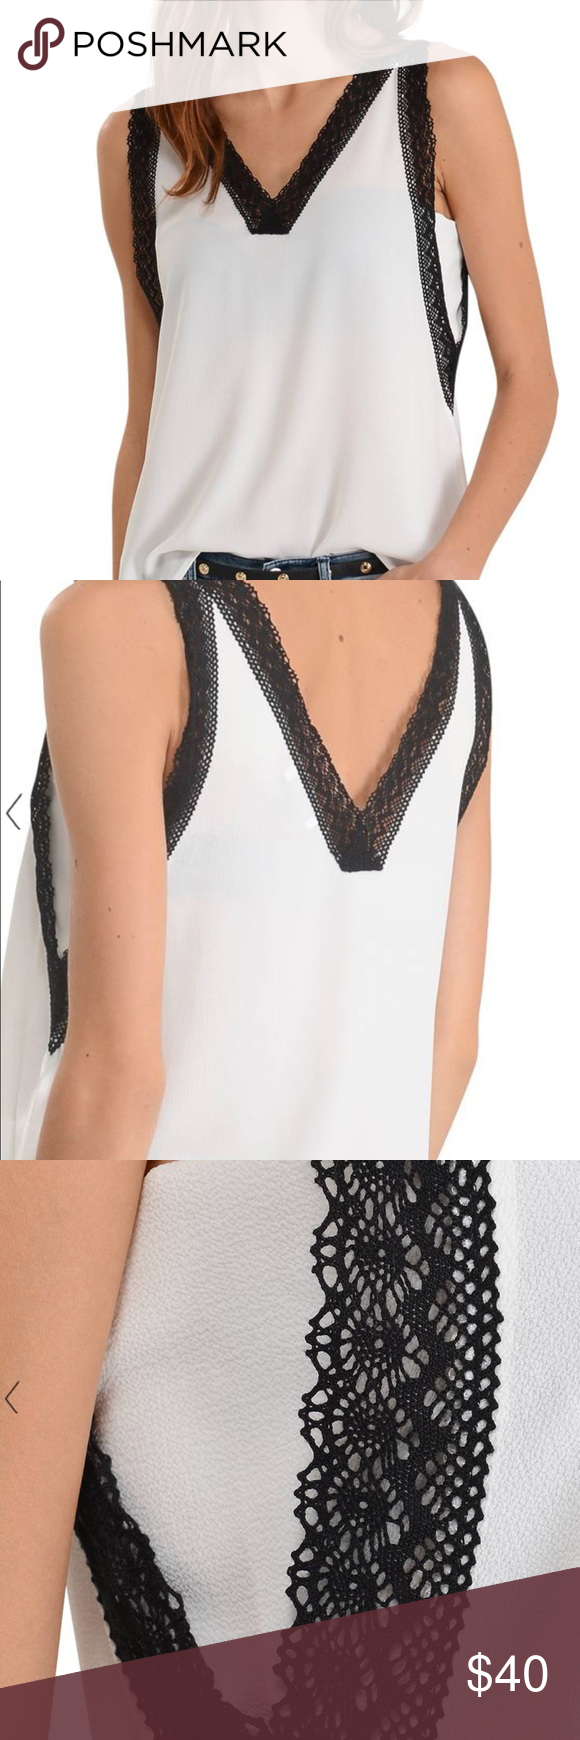 Galeries Lafayette White Tank with Black Lace Trim Purchased in Paris! Only  worn one time